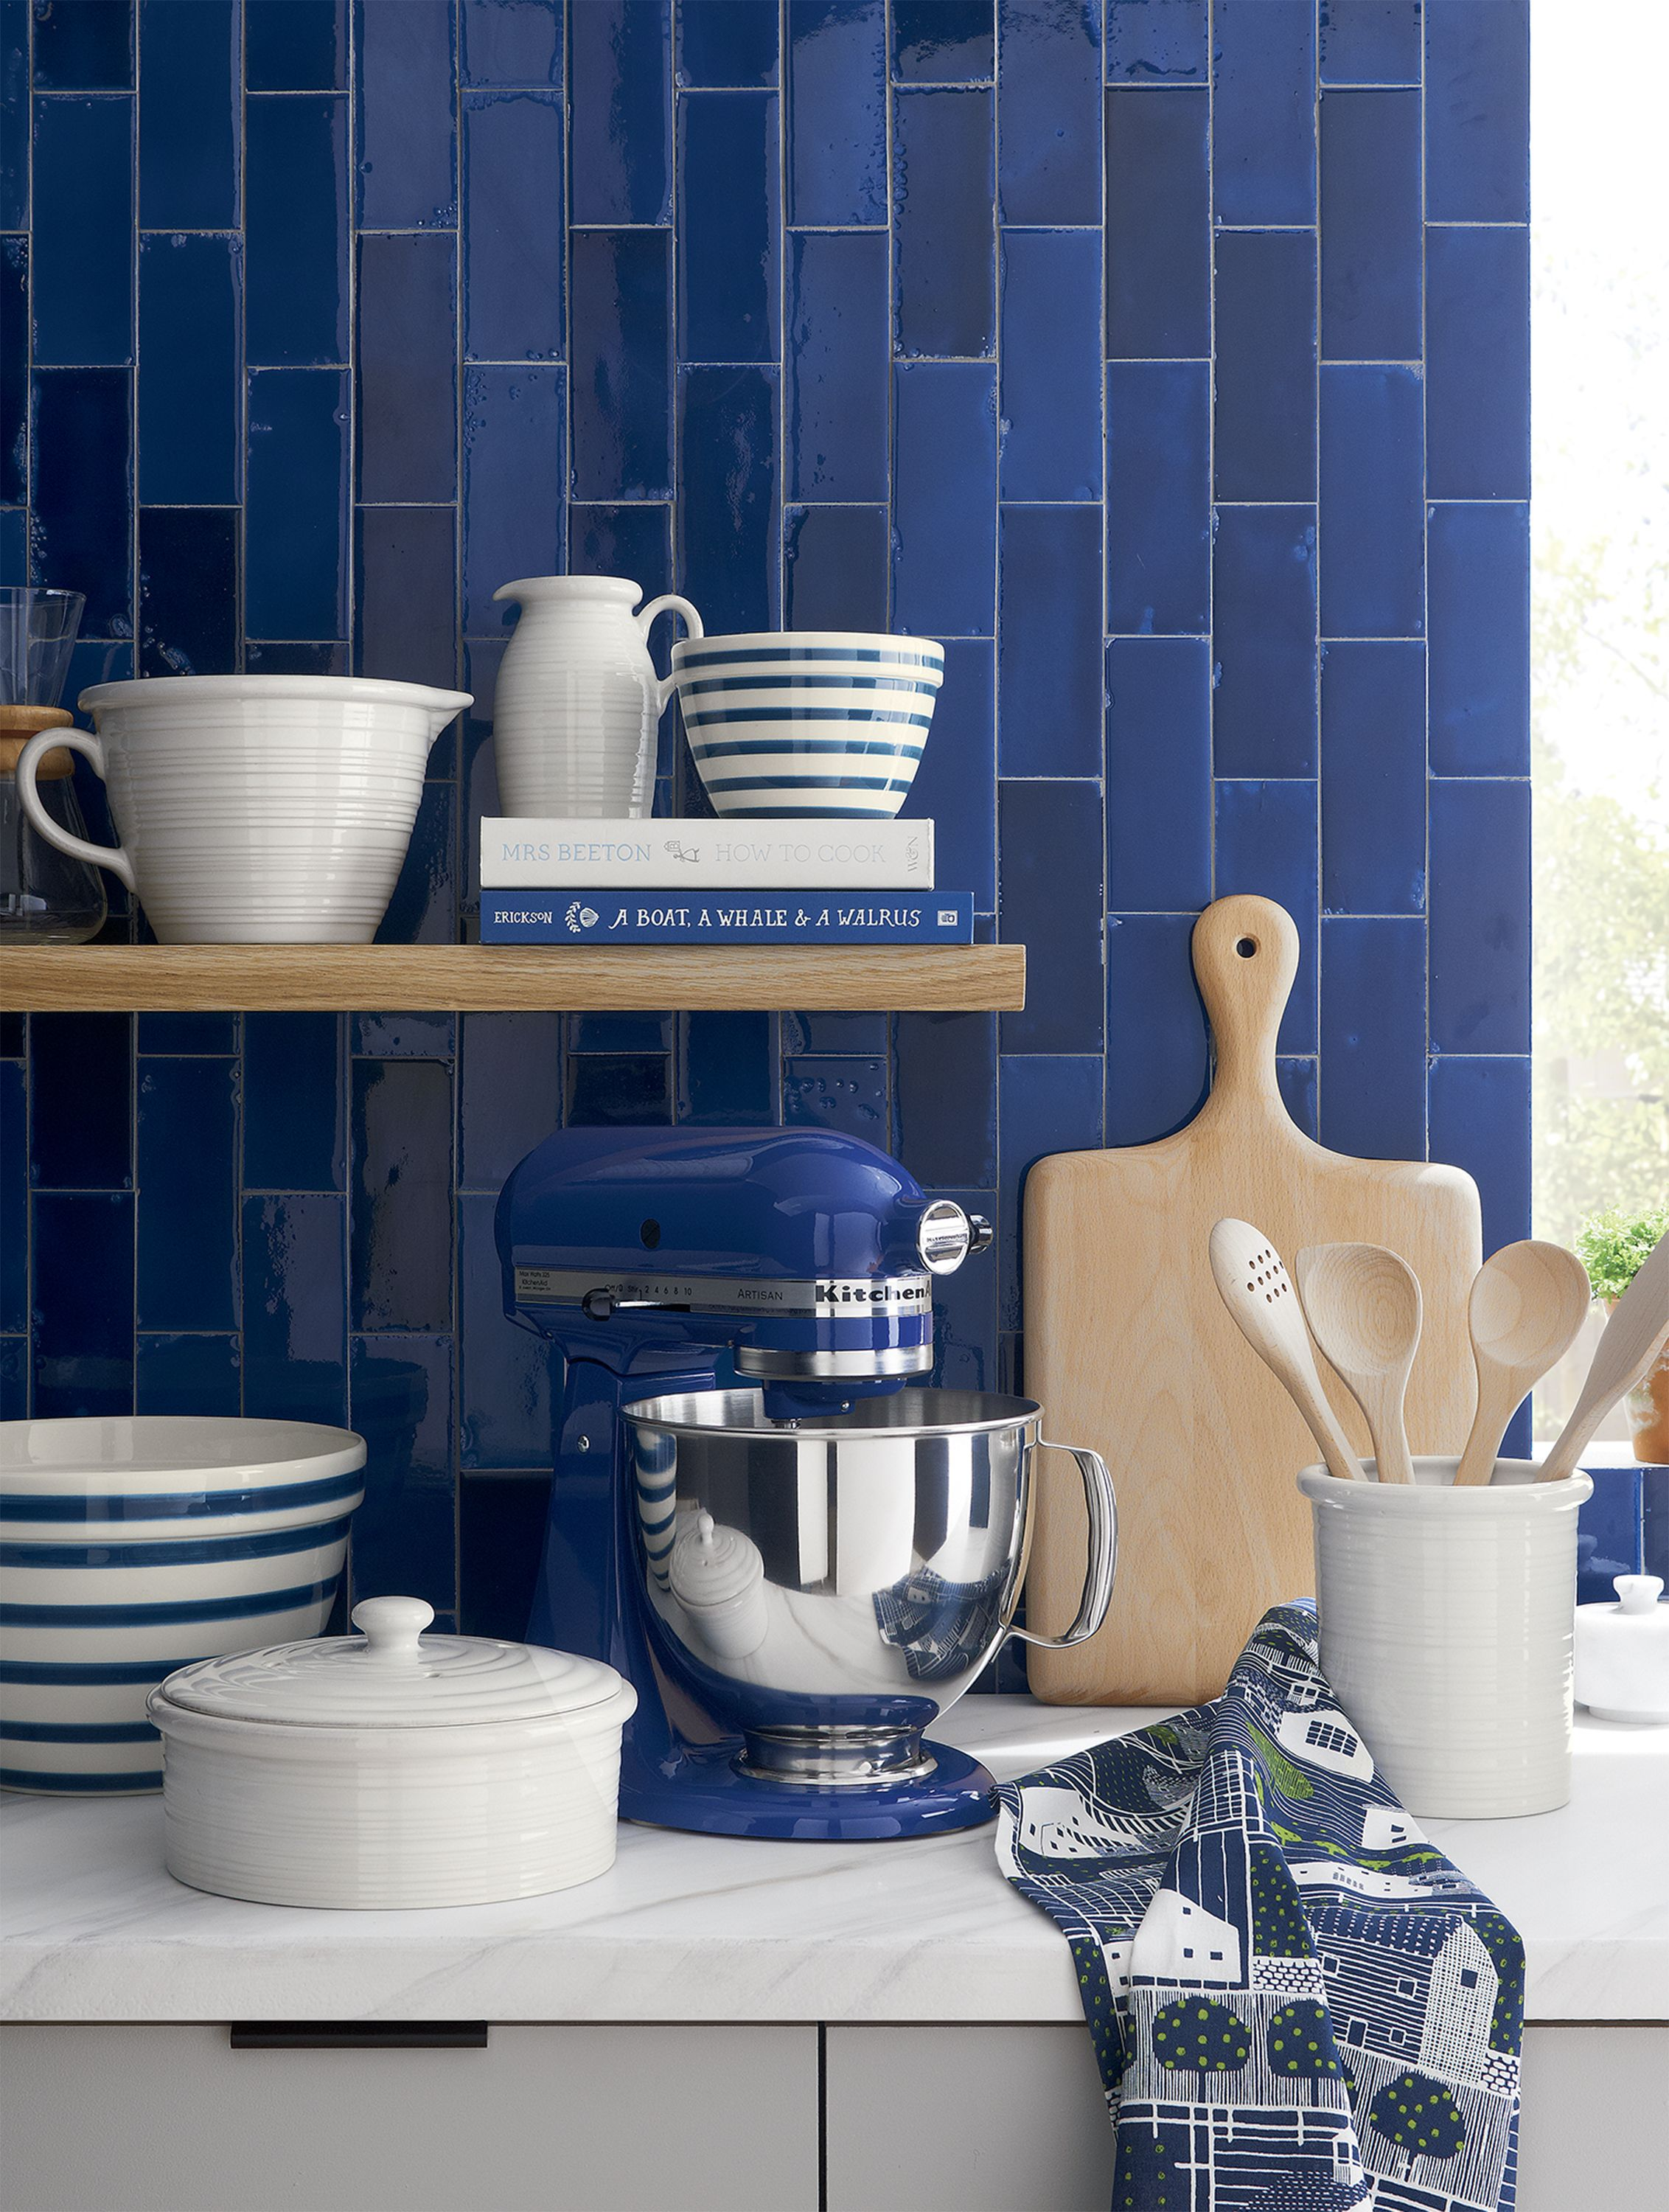 Merveilleux This Heavy Duty Mixer In Cool Blue Willow HasKitchenAid Power And A  Planetary Mixing Action That Spirals The Beater To 67 Touch Points Within  The Bowl For ...